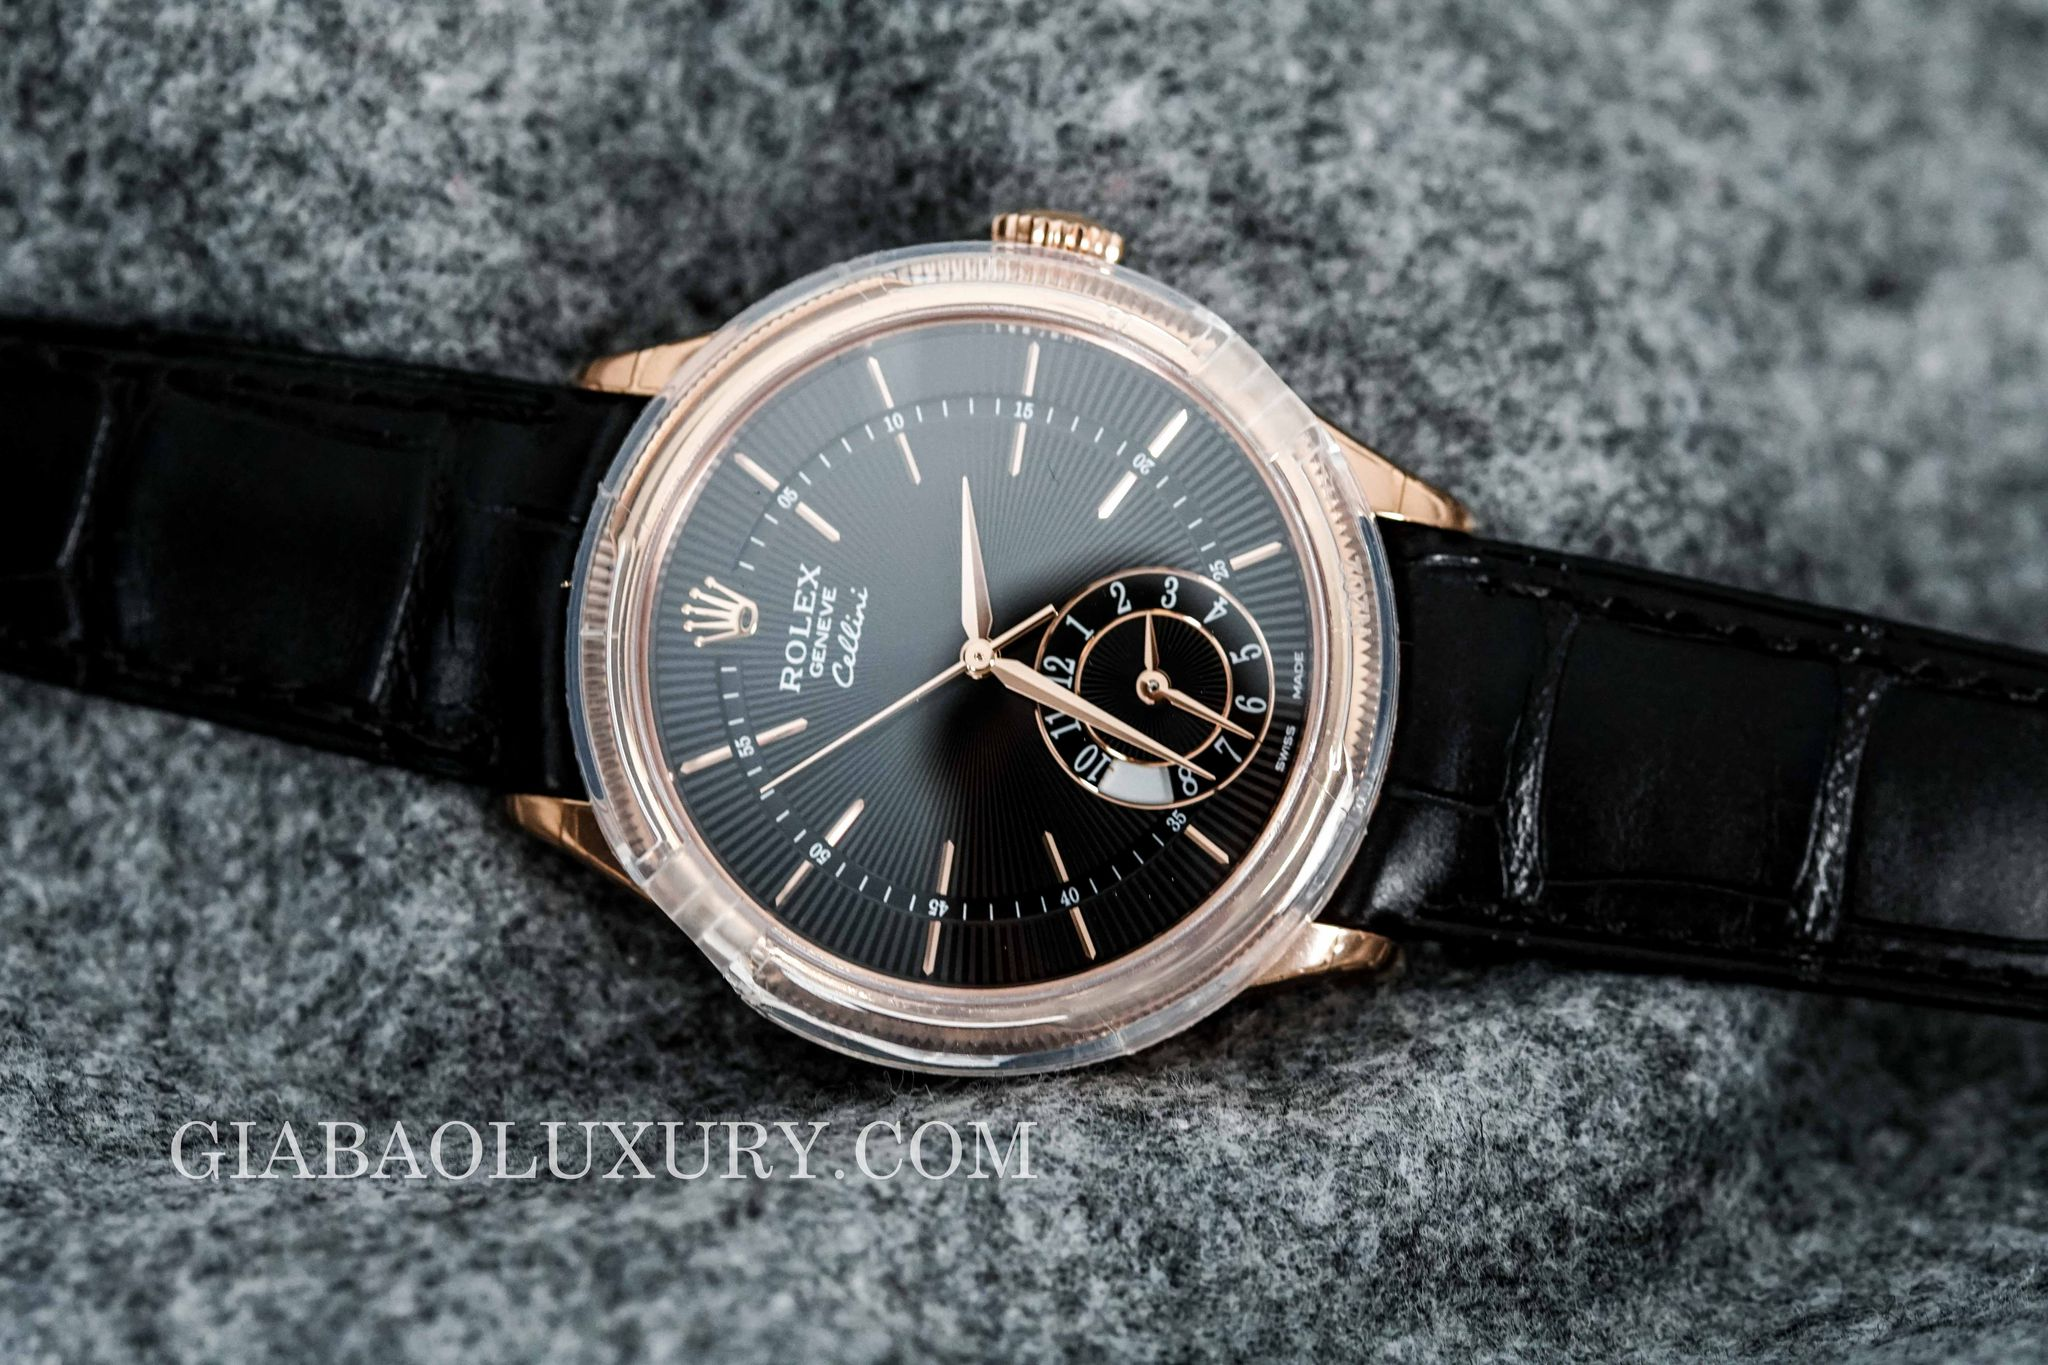 NEW 100% ĐỒNG HỒ ROLEX CELLINI DUAL TIME 50525